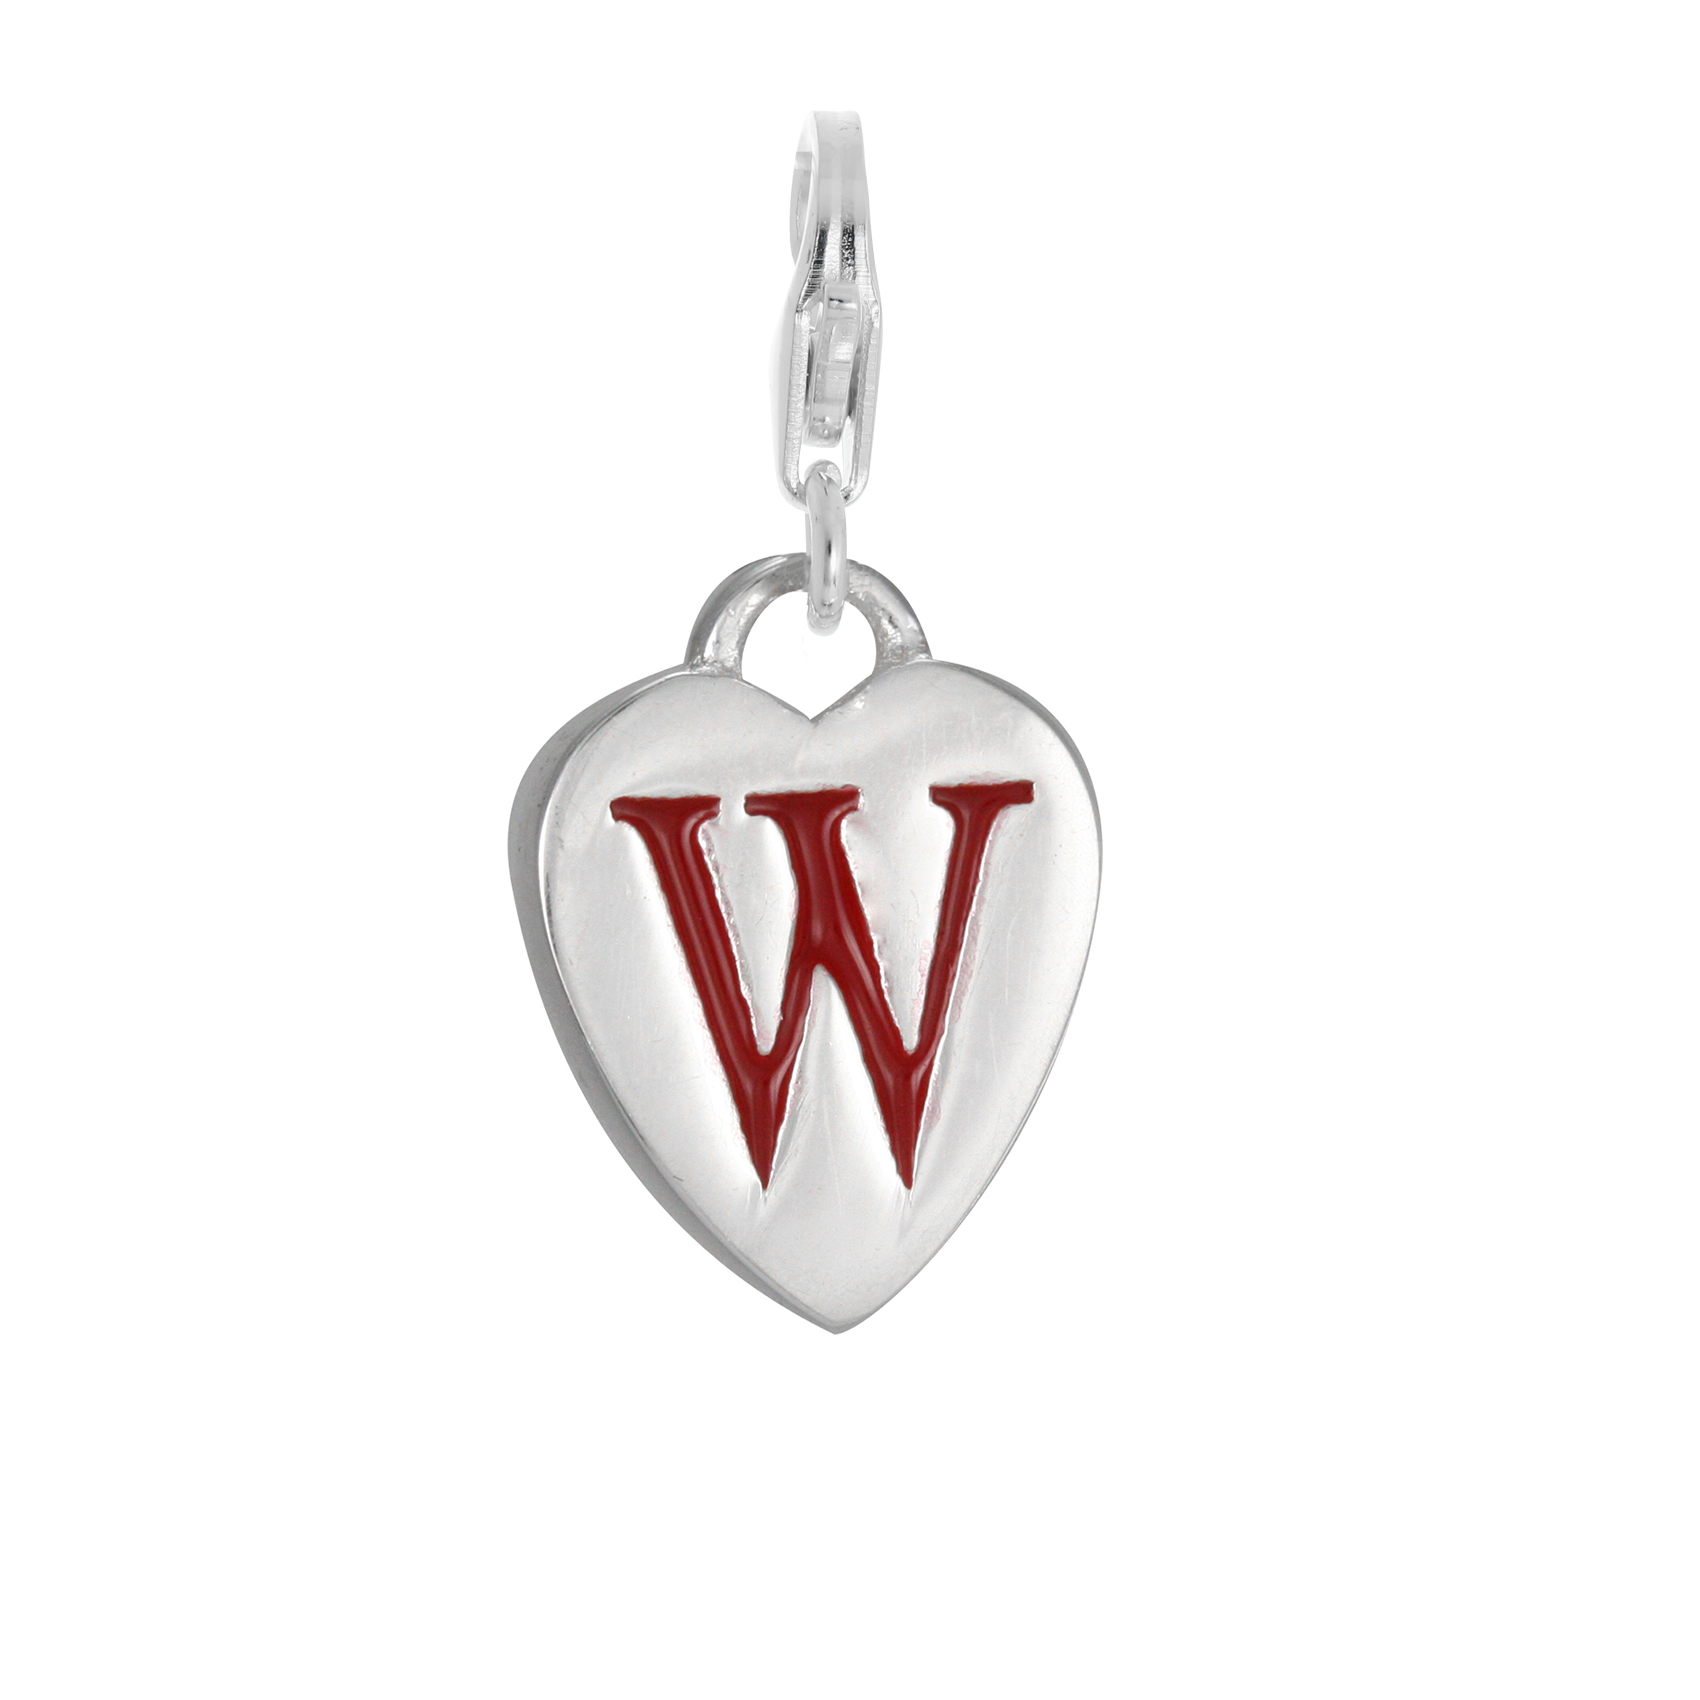 An image of Sterling Silver Enamel Heart Alphabet Letter W Charm on Clip